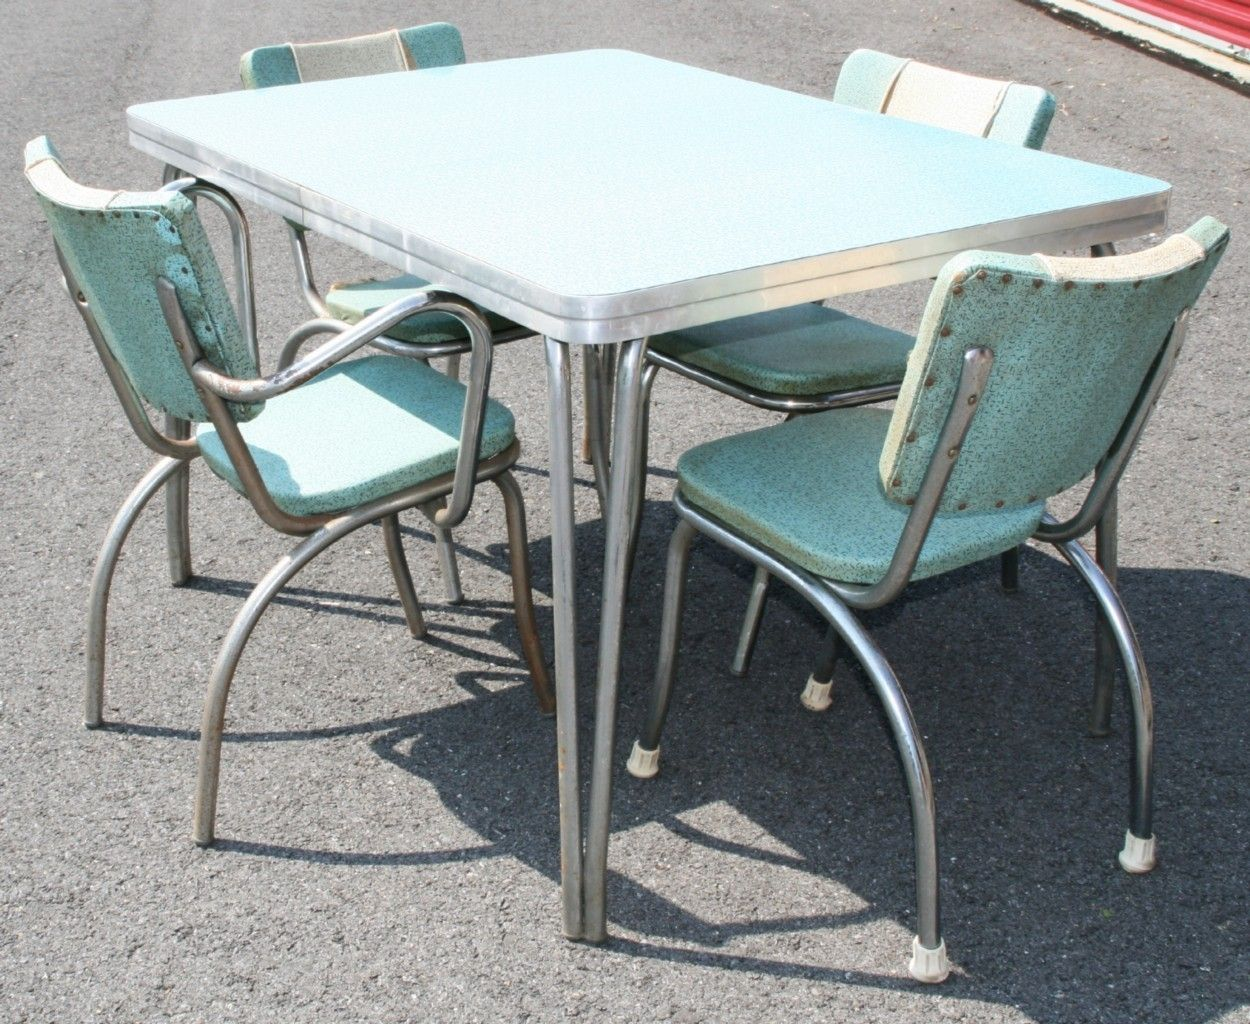 Details about Vtg 50s FORMICA TABLE & 4 CHAIRS mid century ...